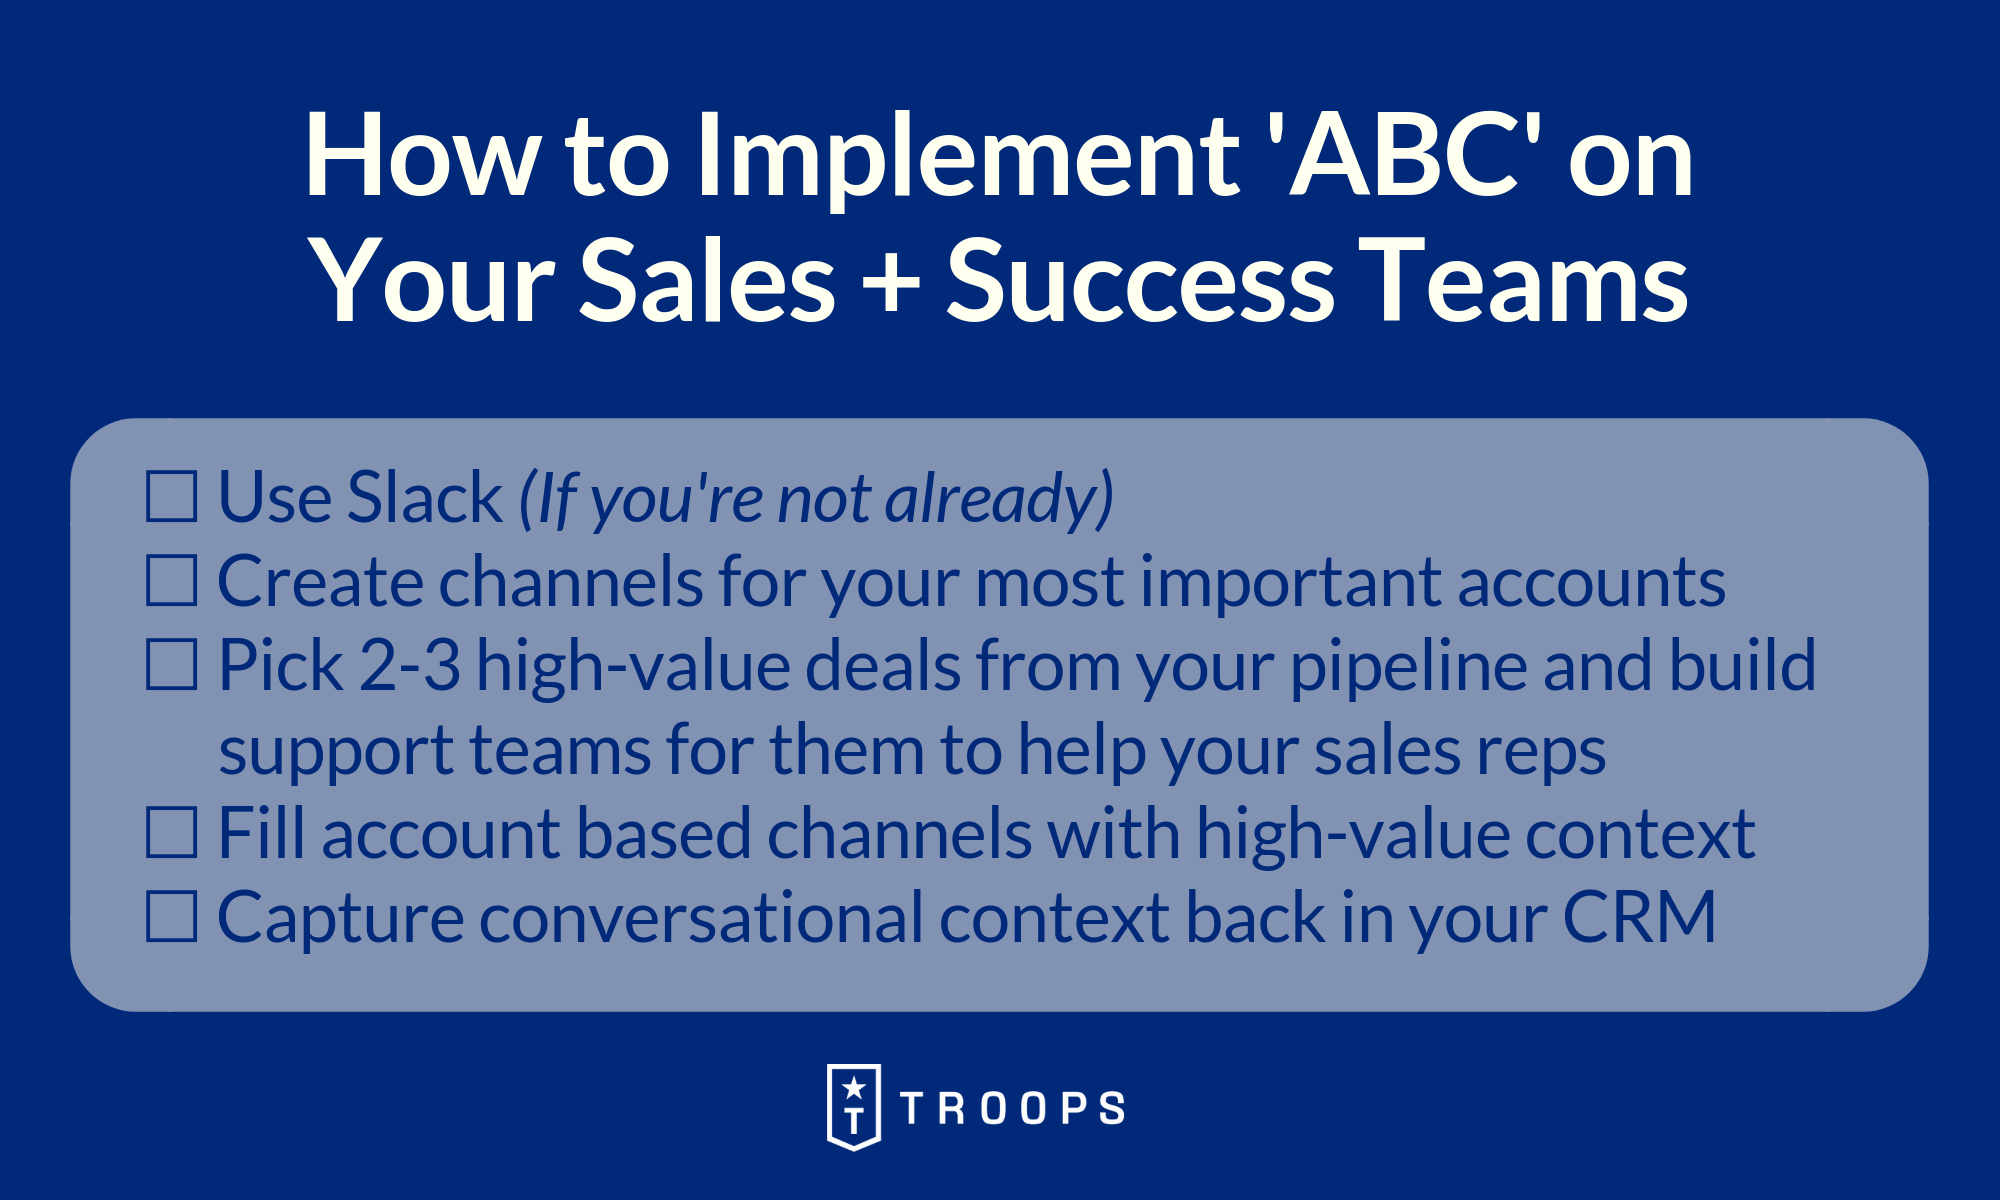 How to Implement ABC Your Sales + Success Teams